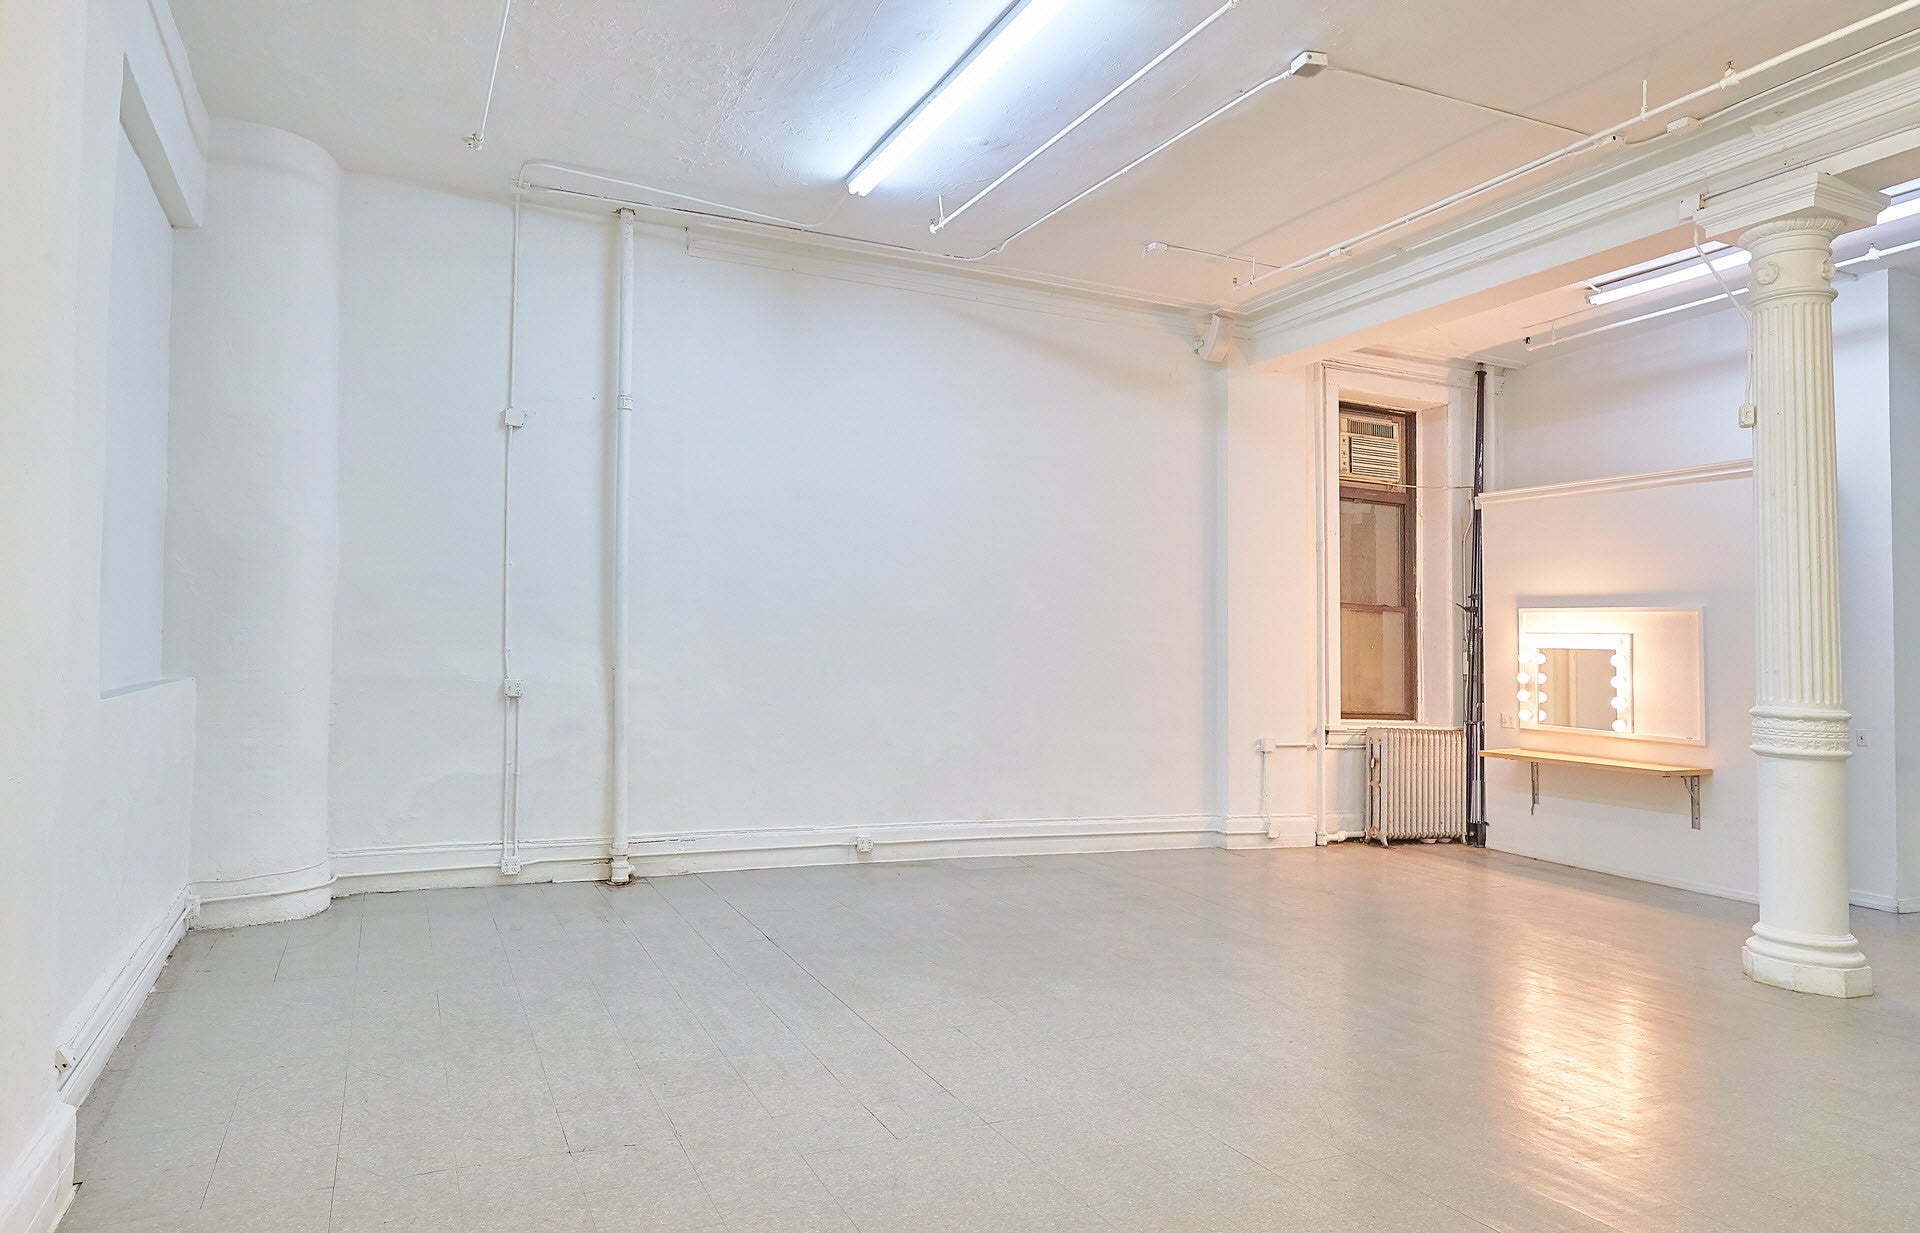 WHITE NYC SPACE TO FILM